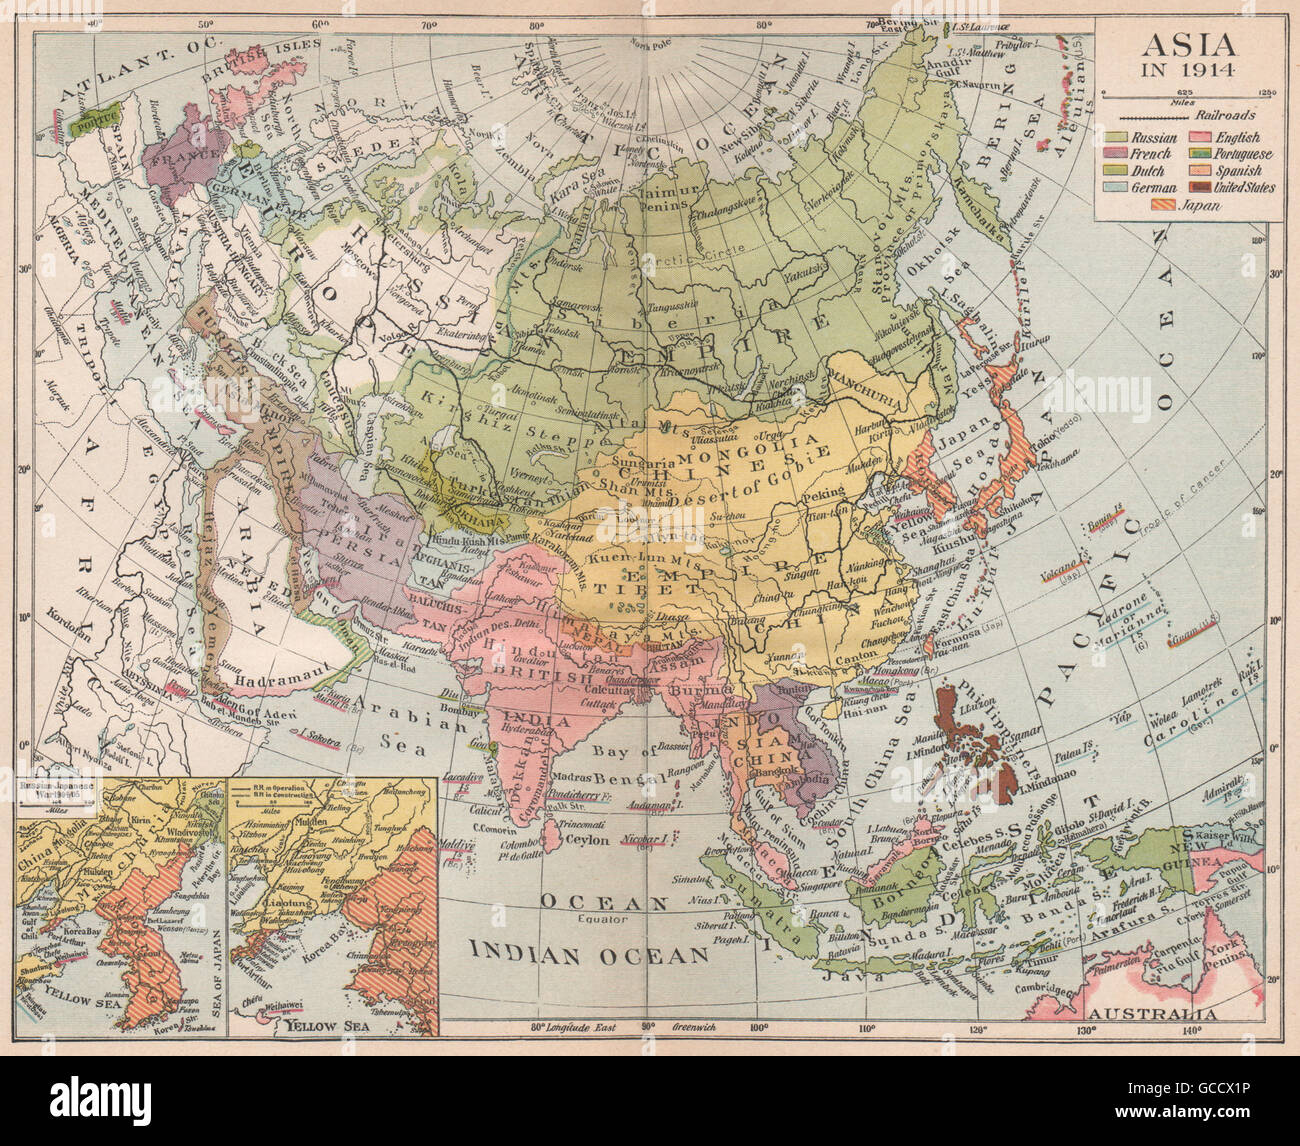 Map Of Asia 1914.Colonial Asia 1914 East Indies C Russian Japanese War 1904 05